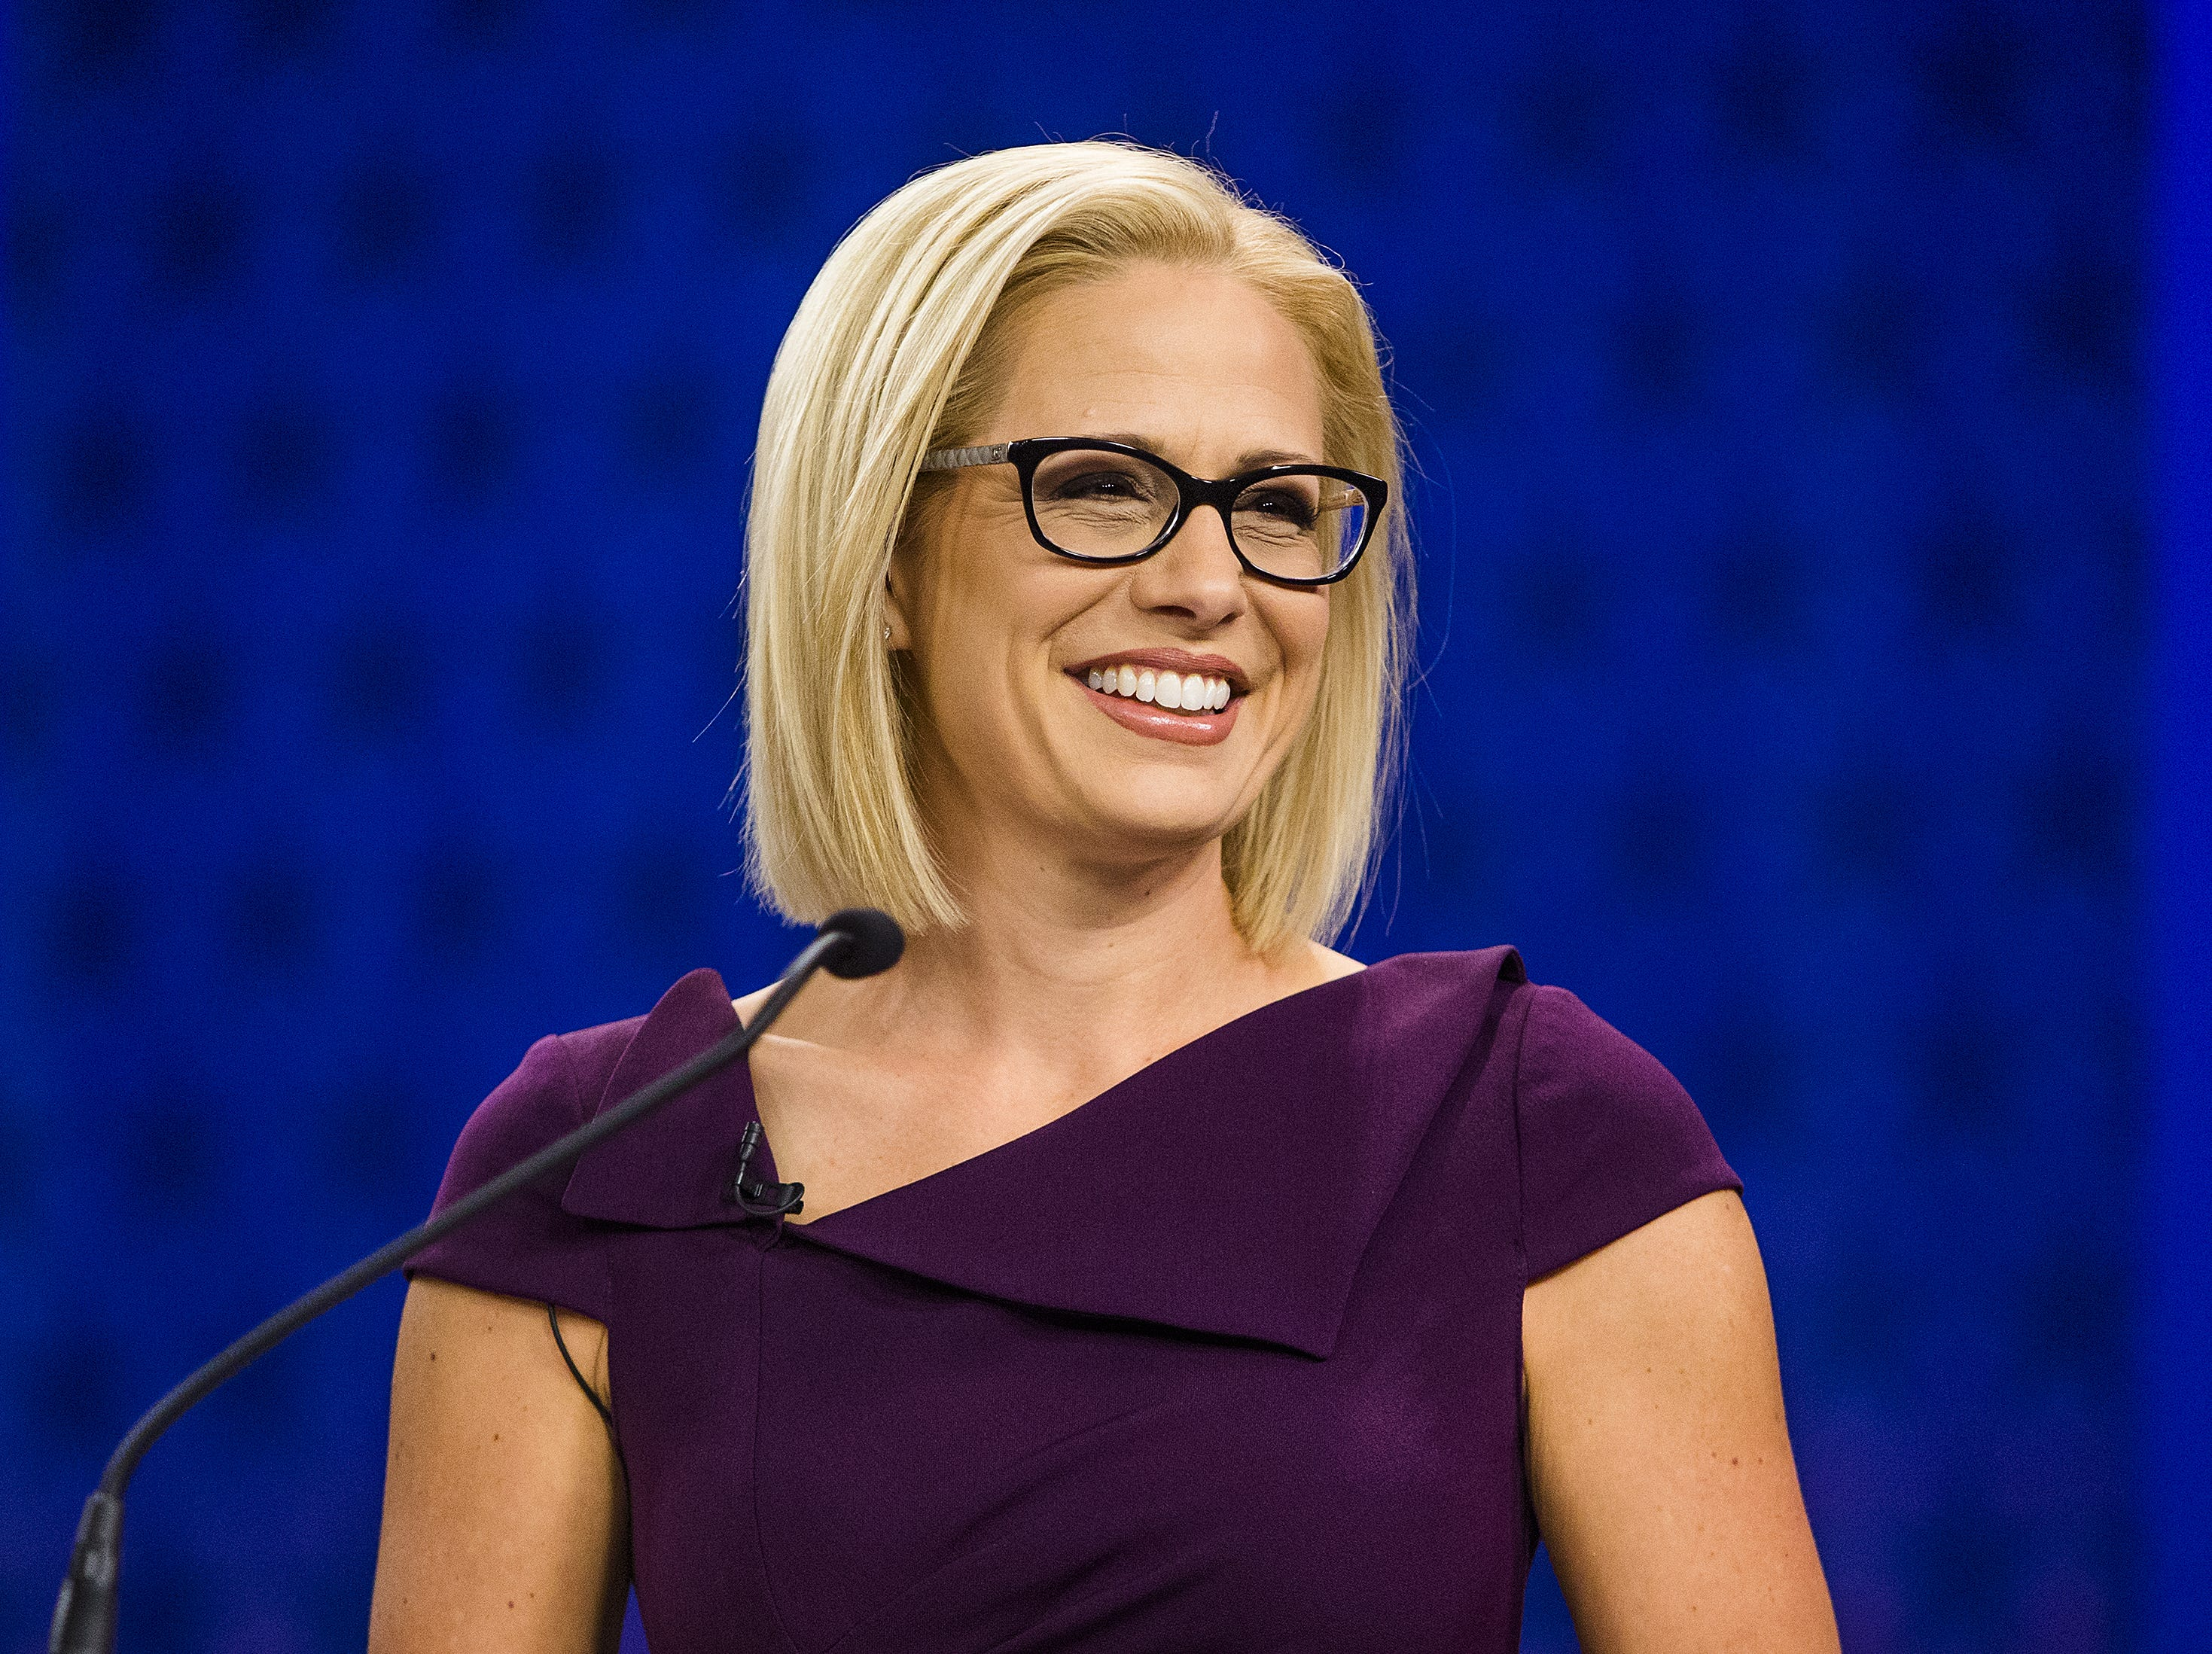 Rep. Kyrsten Sinema prepares to debate Rep. Martha McSally in the Arizona PBS studios at the Walter Cronkite School of Journalism and Mass Communication at Arizona State University in Phoenix on Oct. 15, 2018.